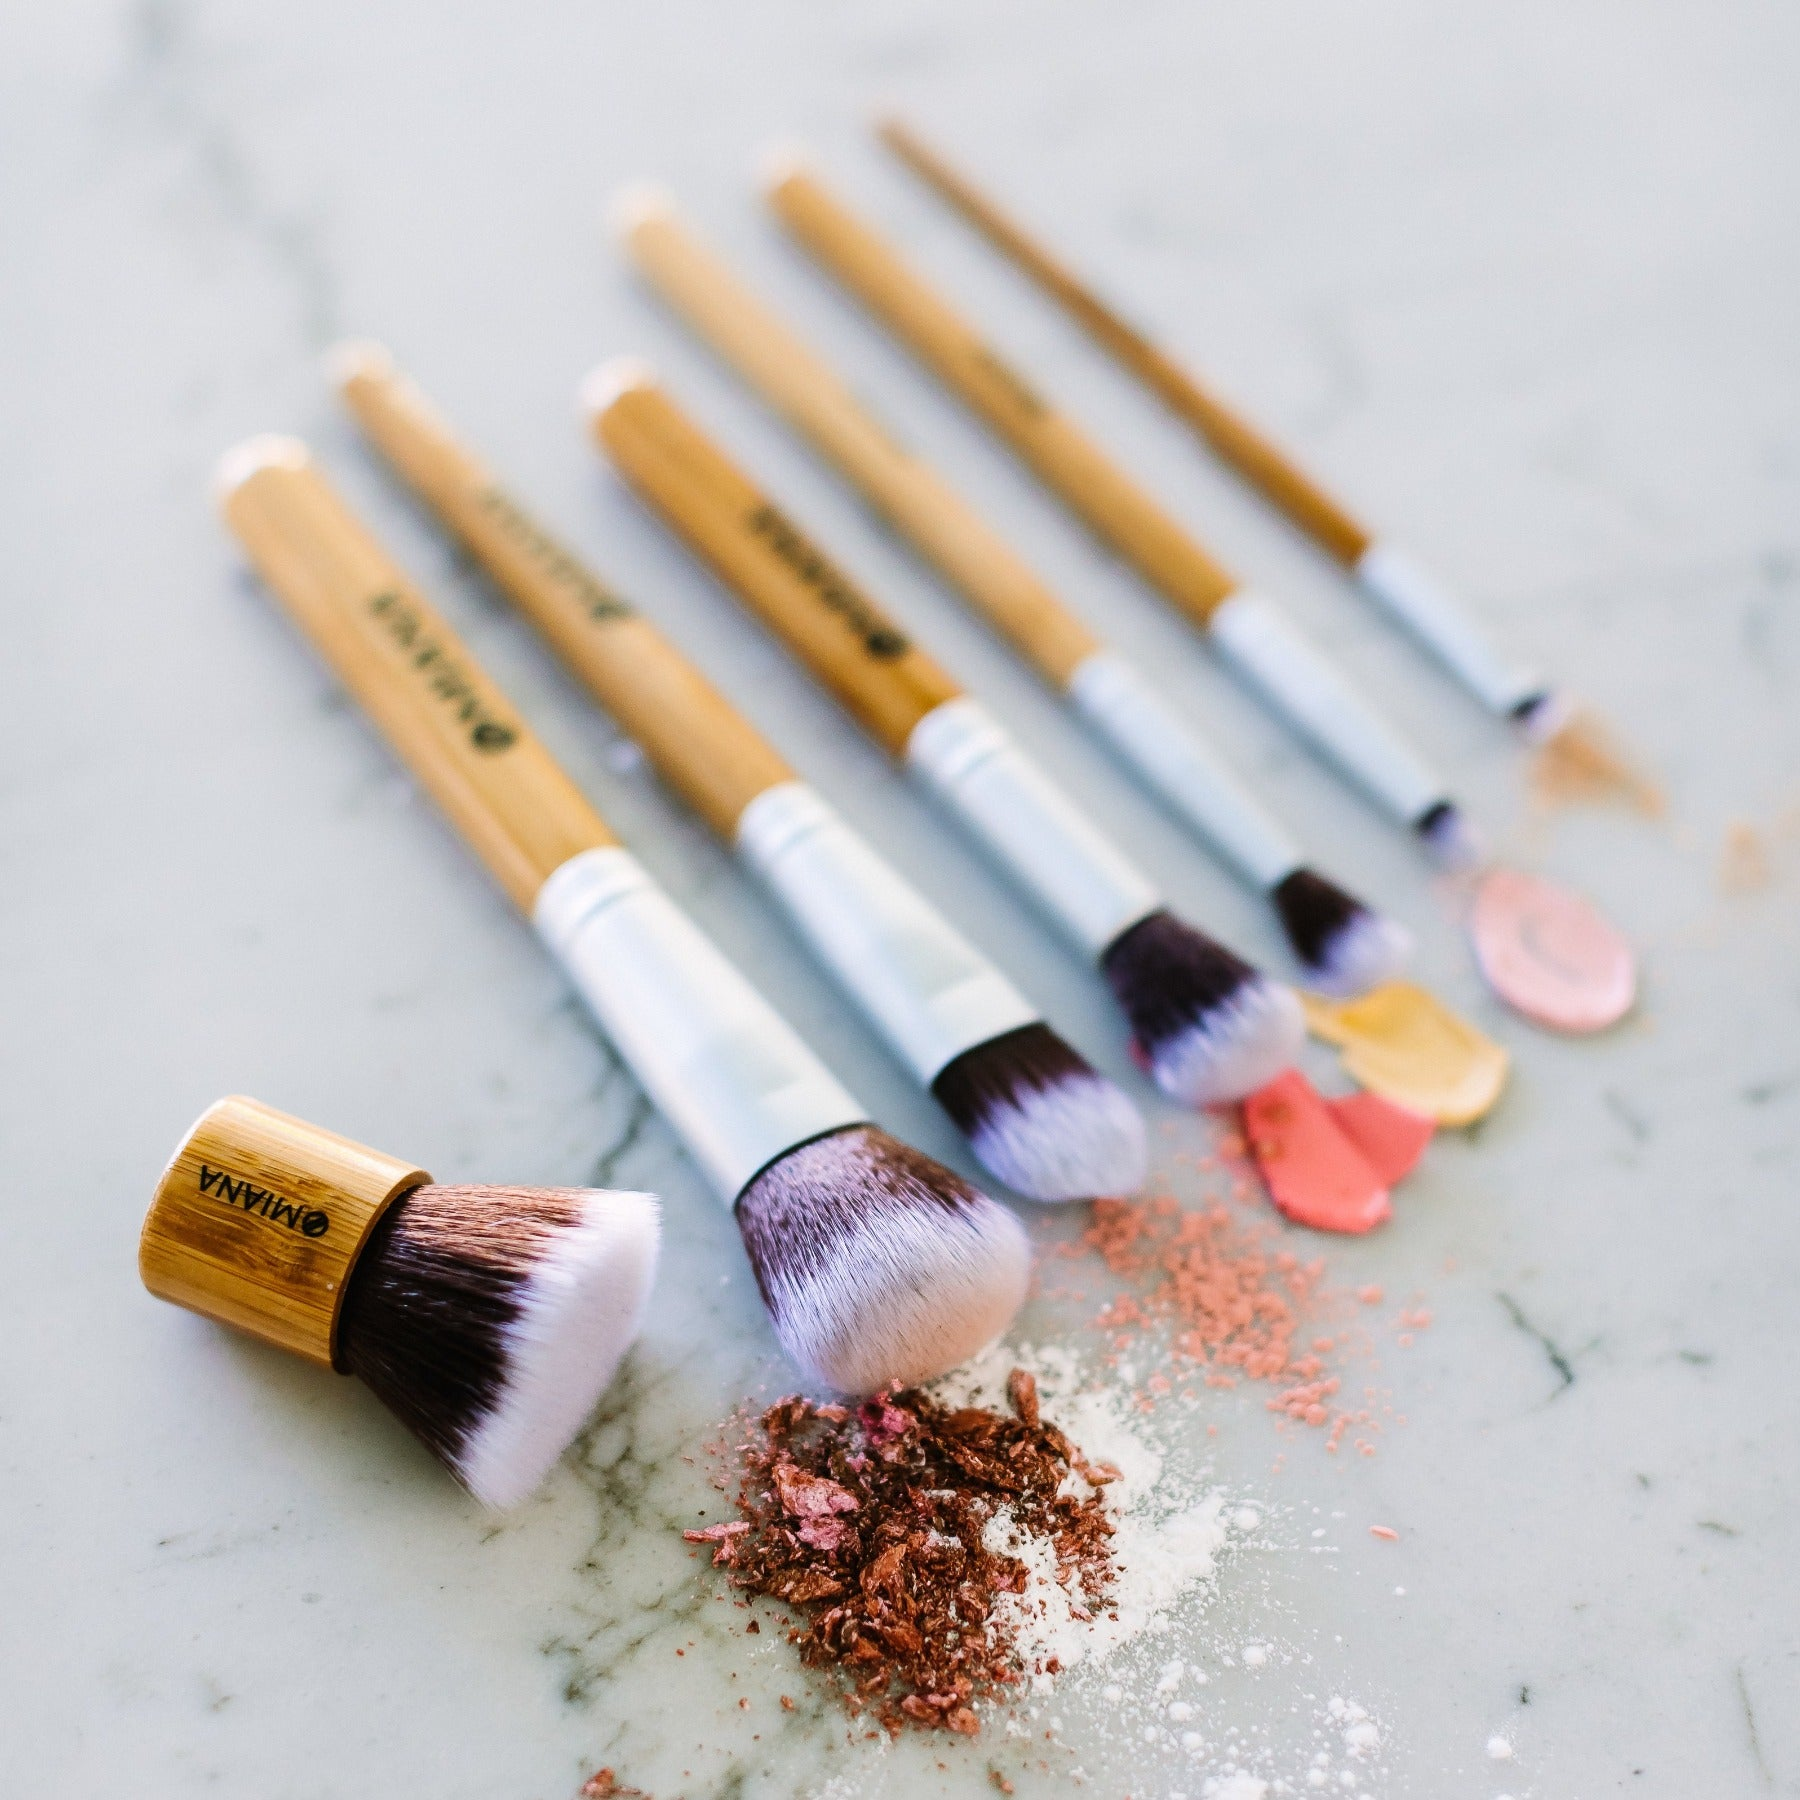 Best Cruelty Free Makeup Brushes for Clean Beauty